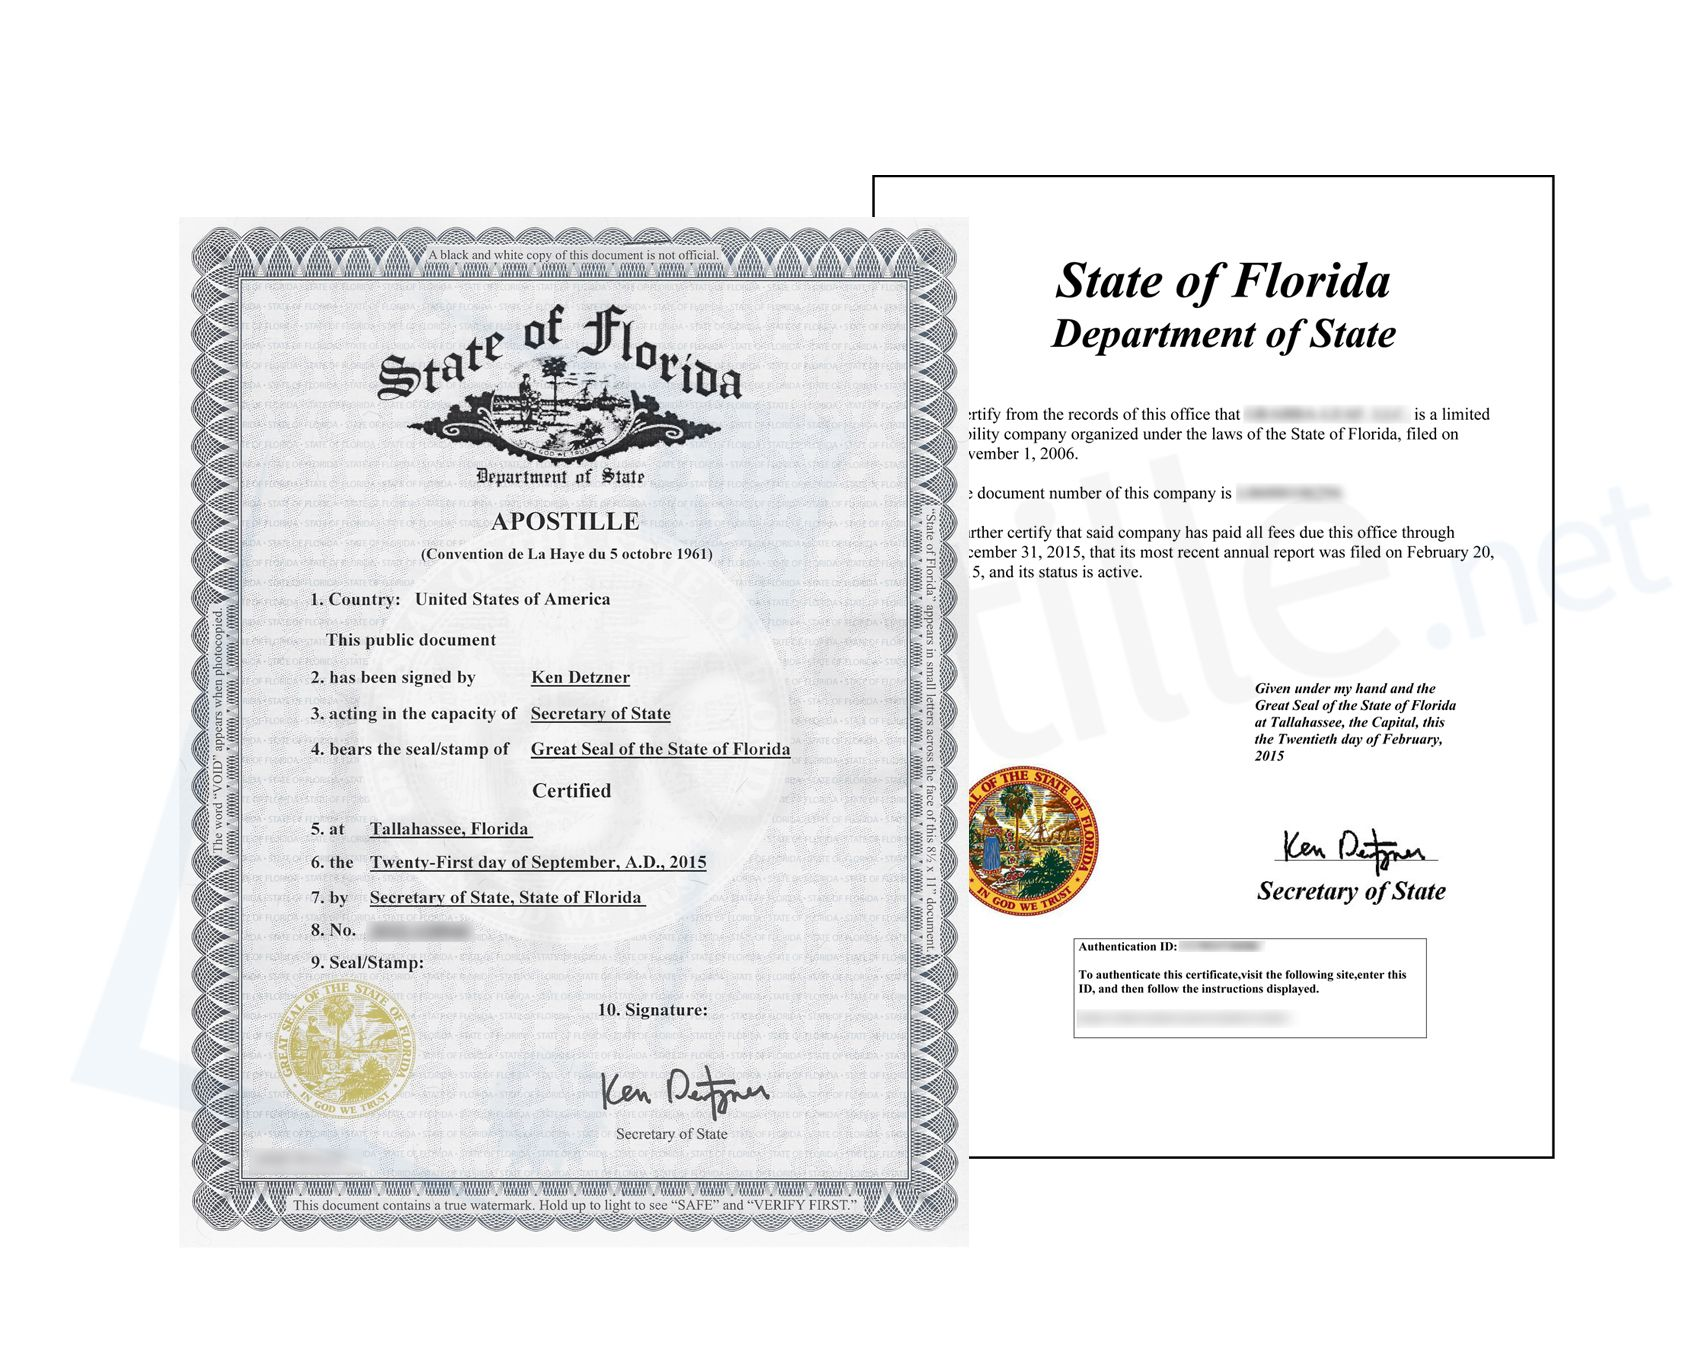 State Of Florida Apostille Of A Good Standing Certificate Both